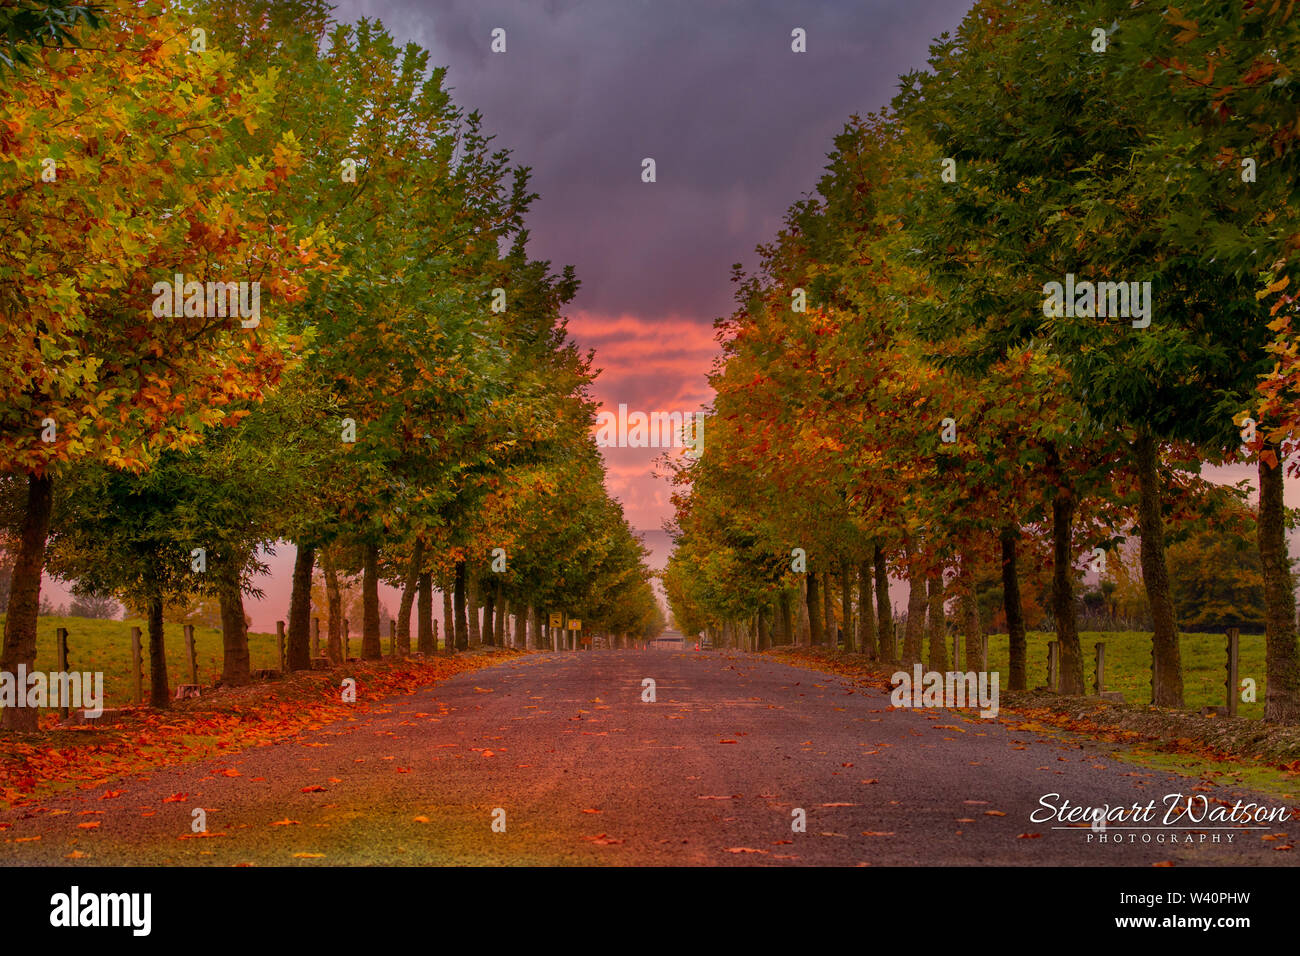 Tree lined road in Autumn at sunset - Stock Image